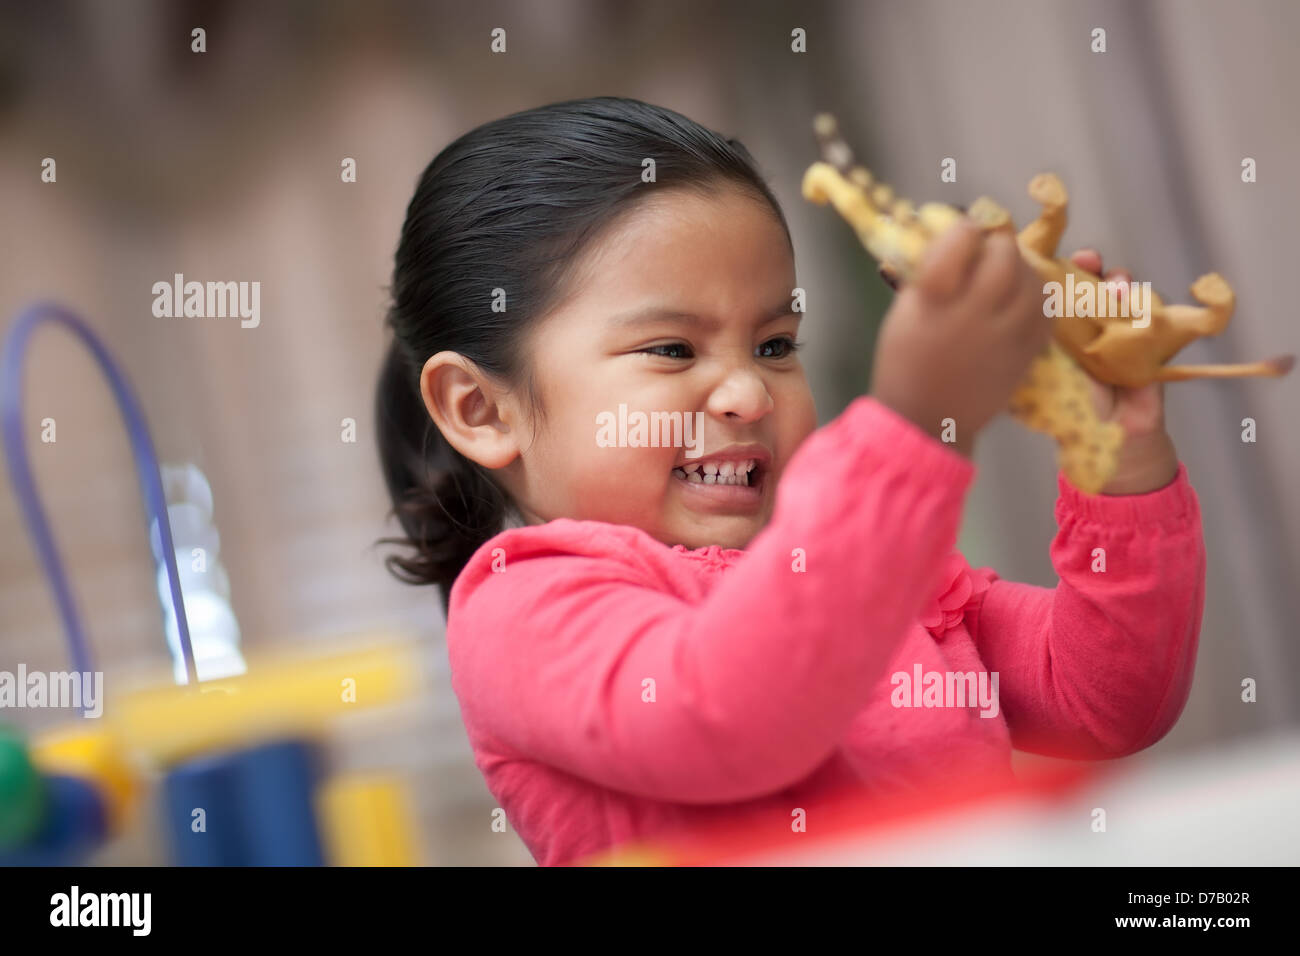 Little girl grimacing while playing rough with plastic toy animals - Stock Image